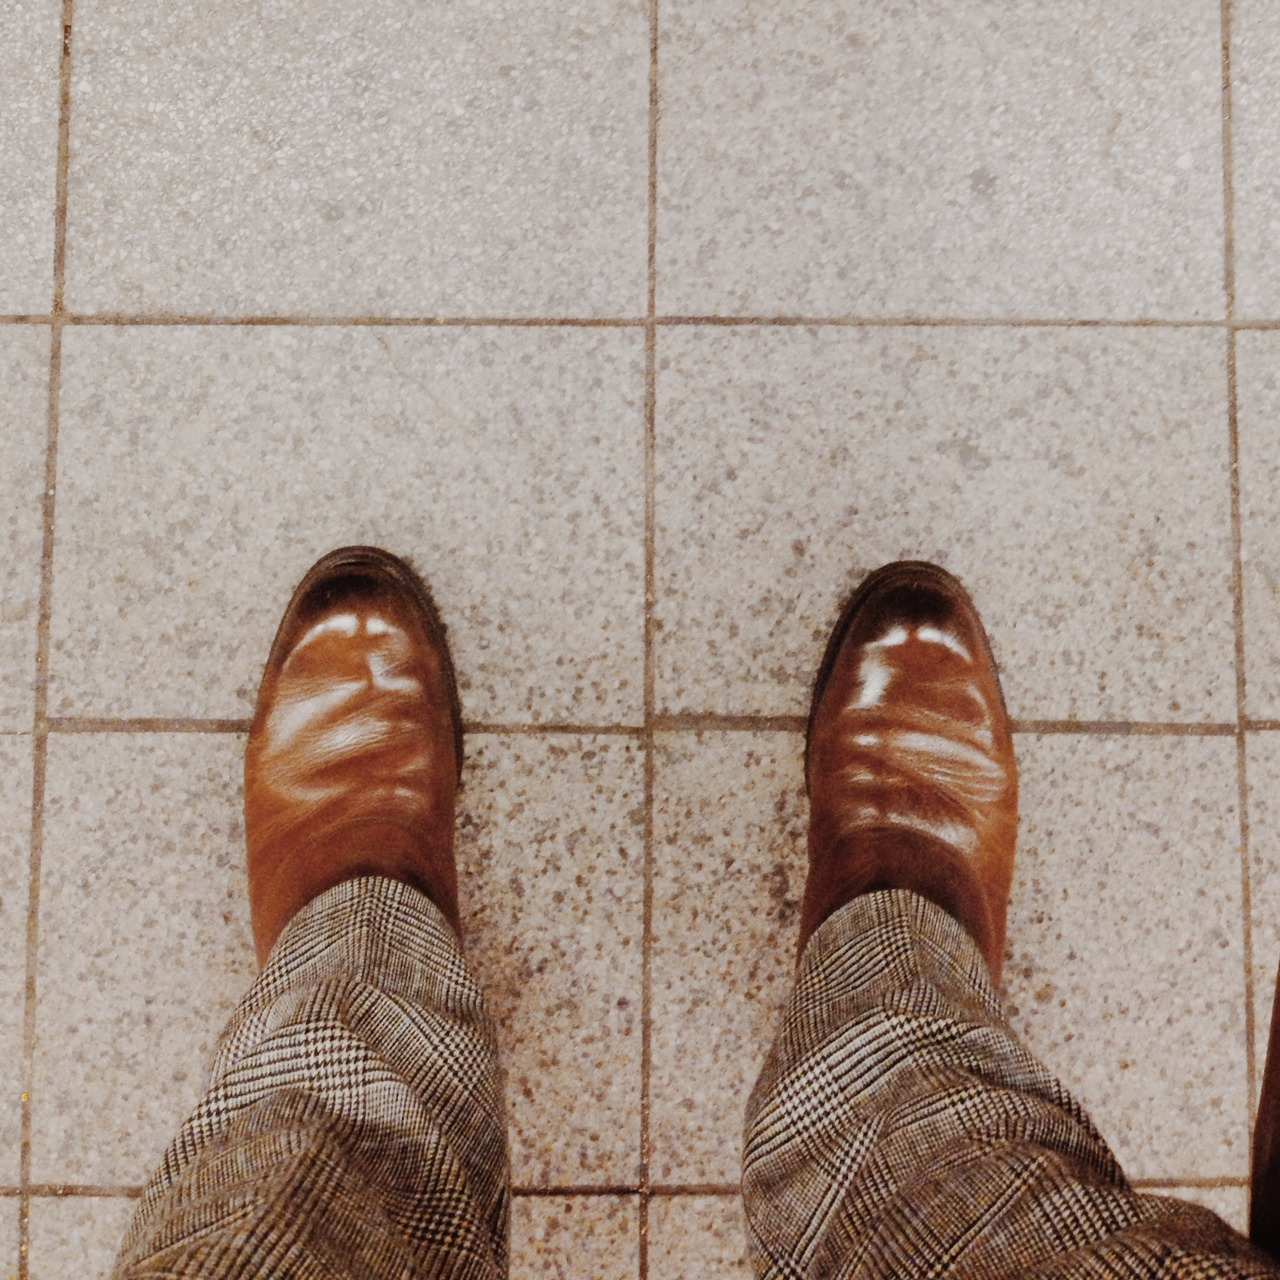 I got my shoes shined. And then took a photo as I waited for the train.